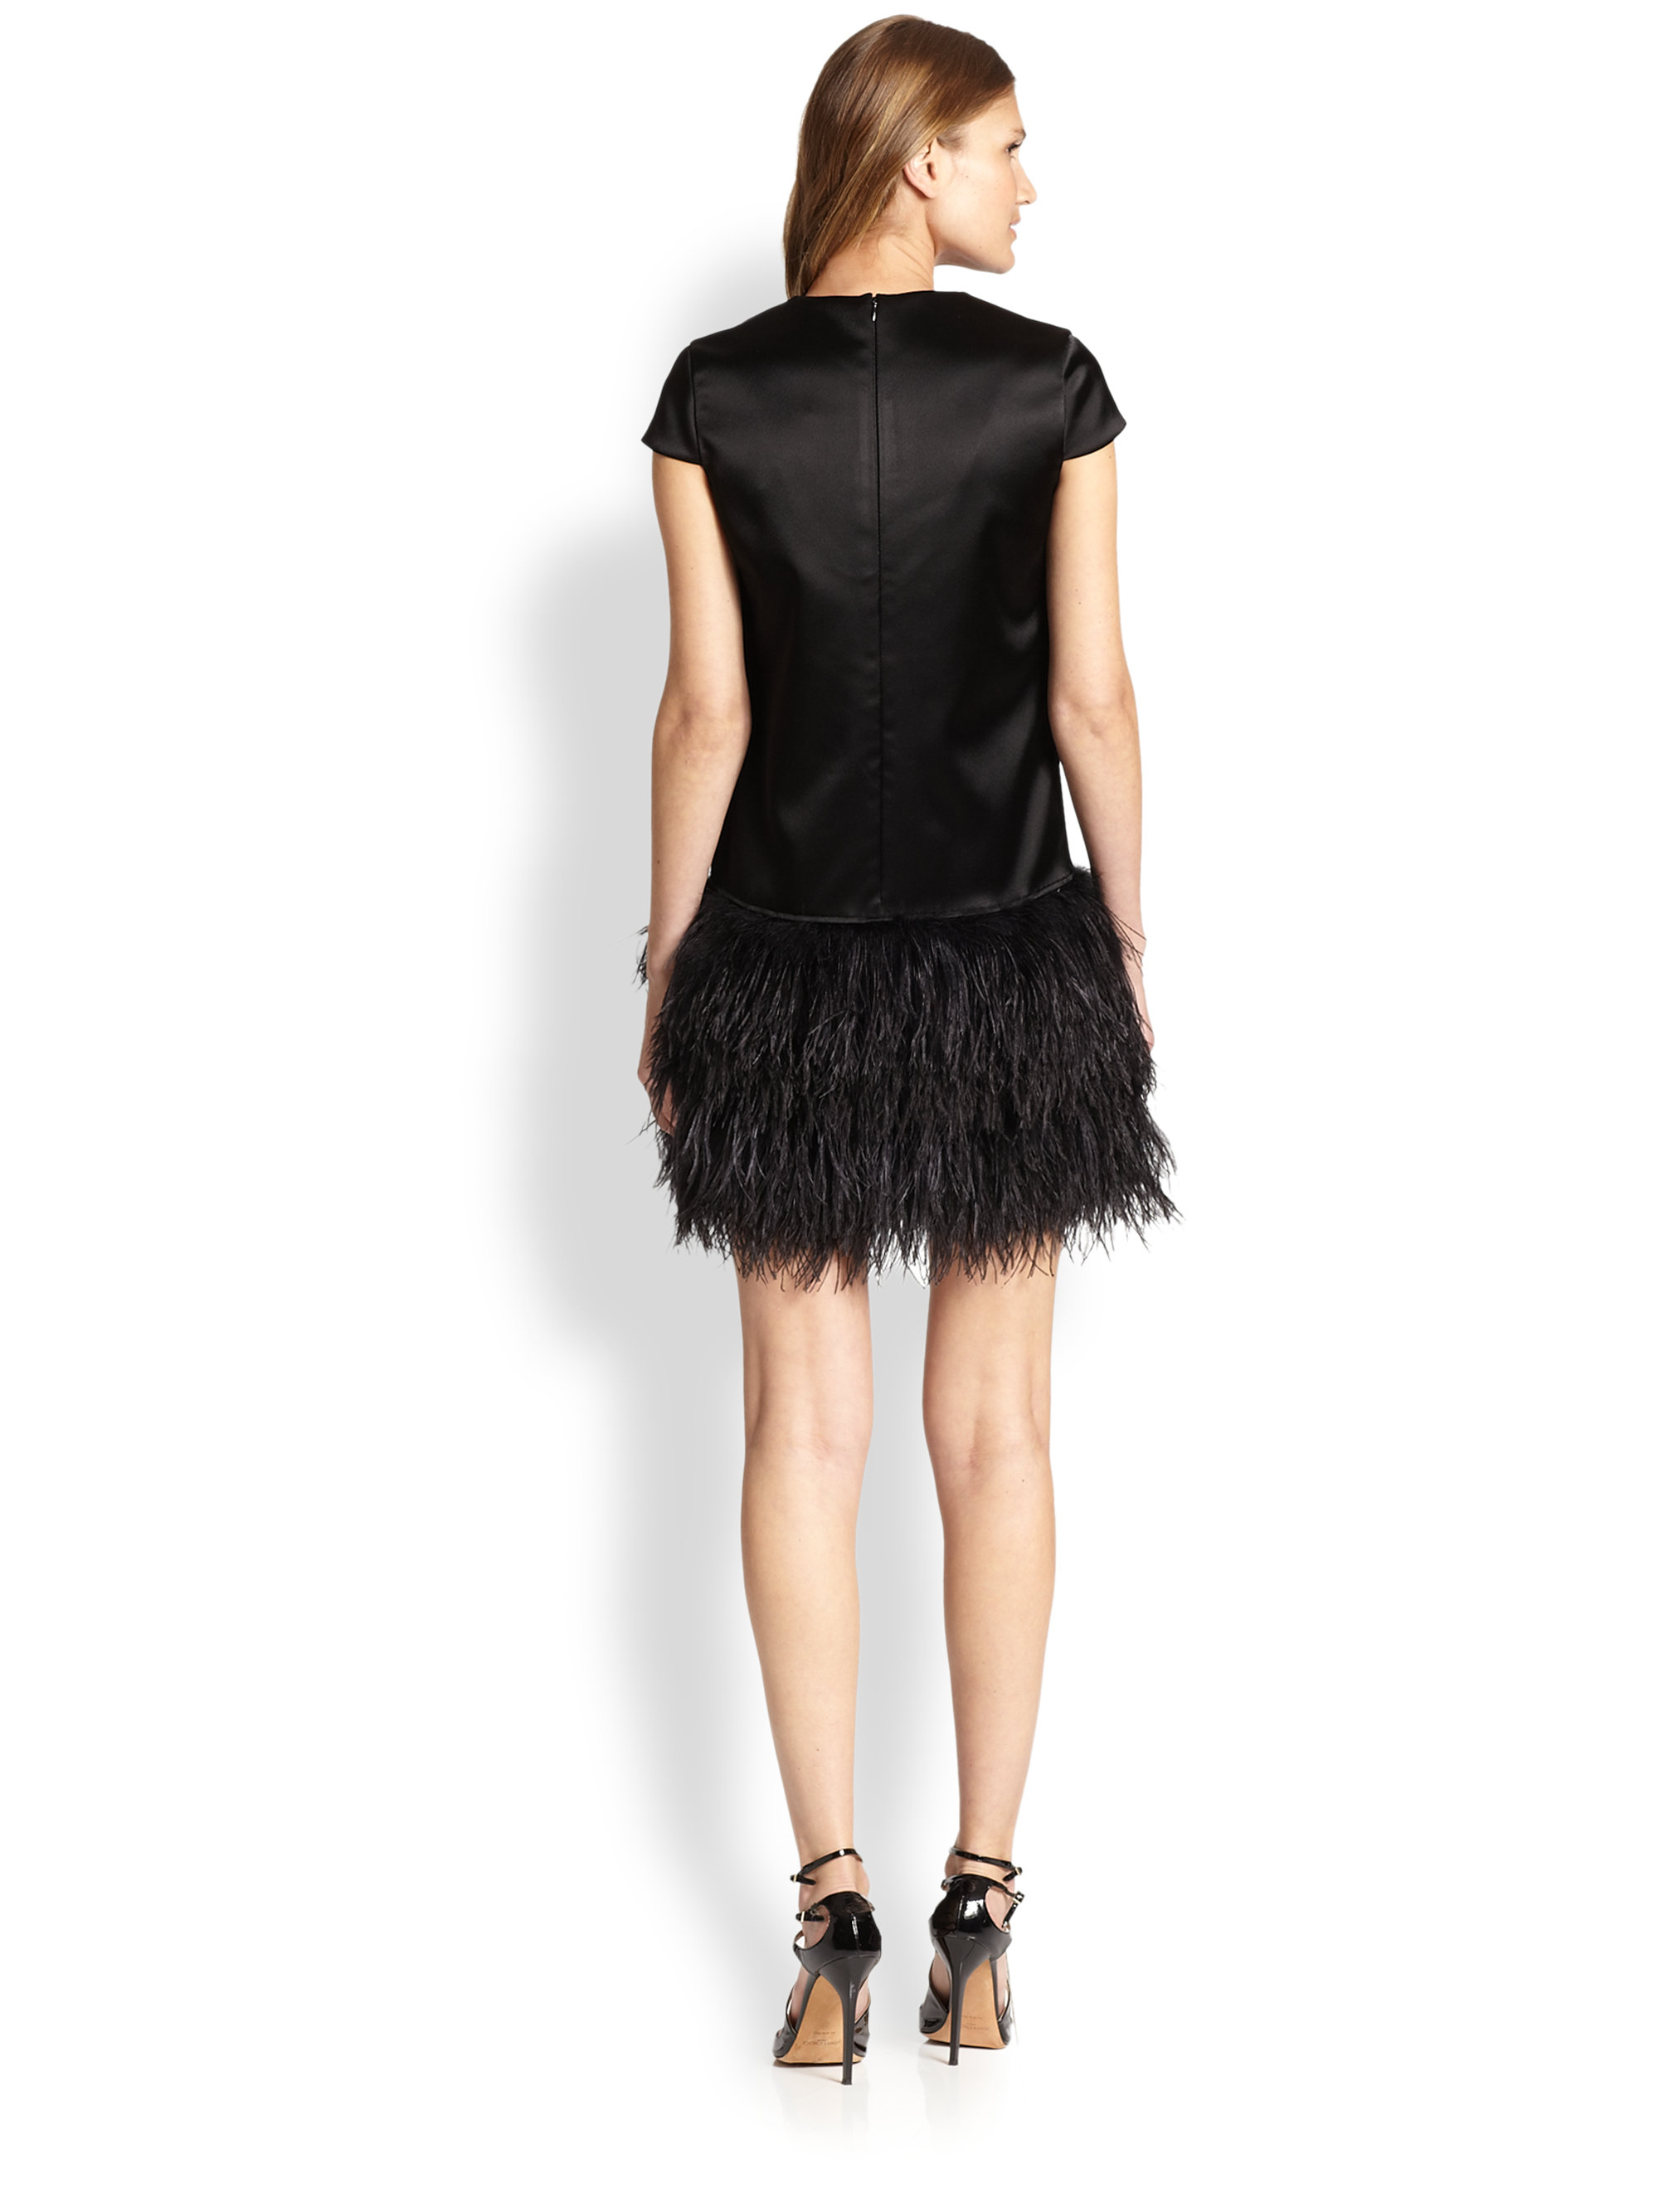 You searched for: black feathers dress! Etsy is the home to thousands of handmade, vintage, and one-of-a-kind products and gifts related to your search. No matter what you're looking for or where you are in the world, our global marketplace of sellers can help you .